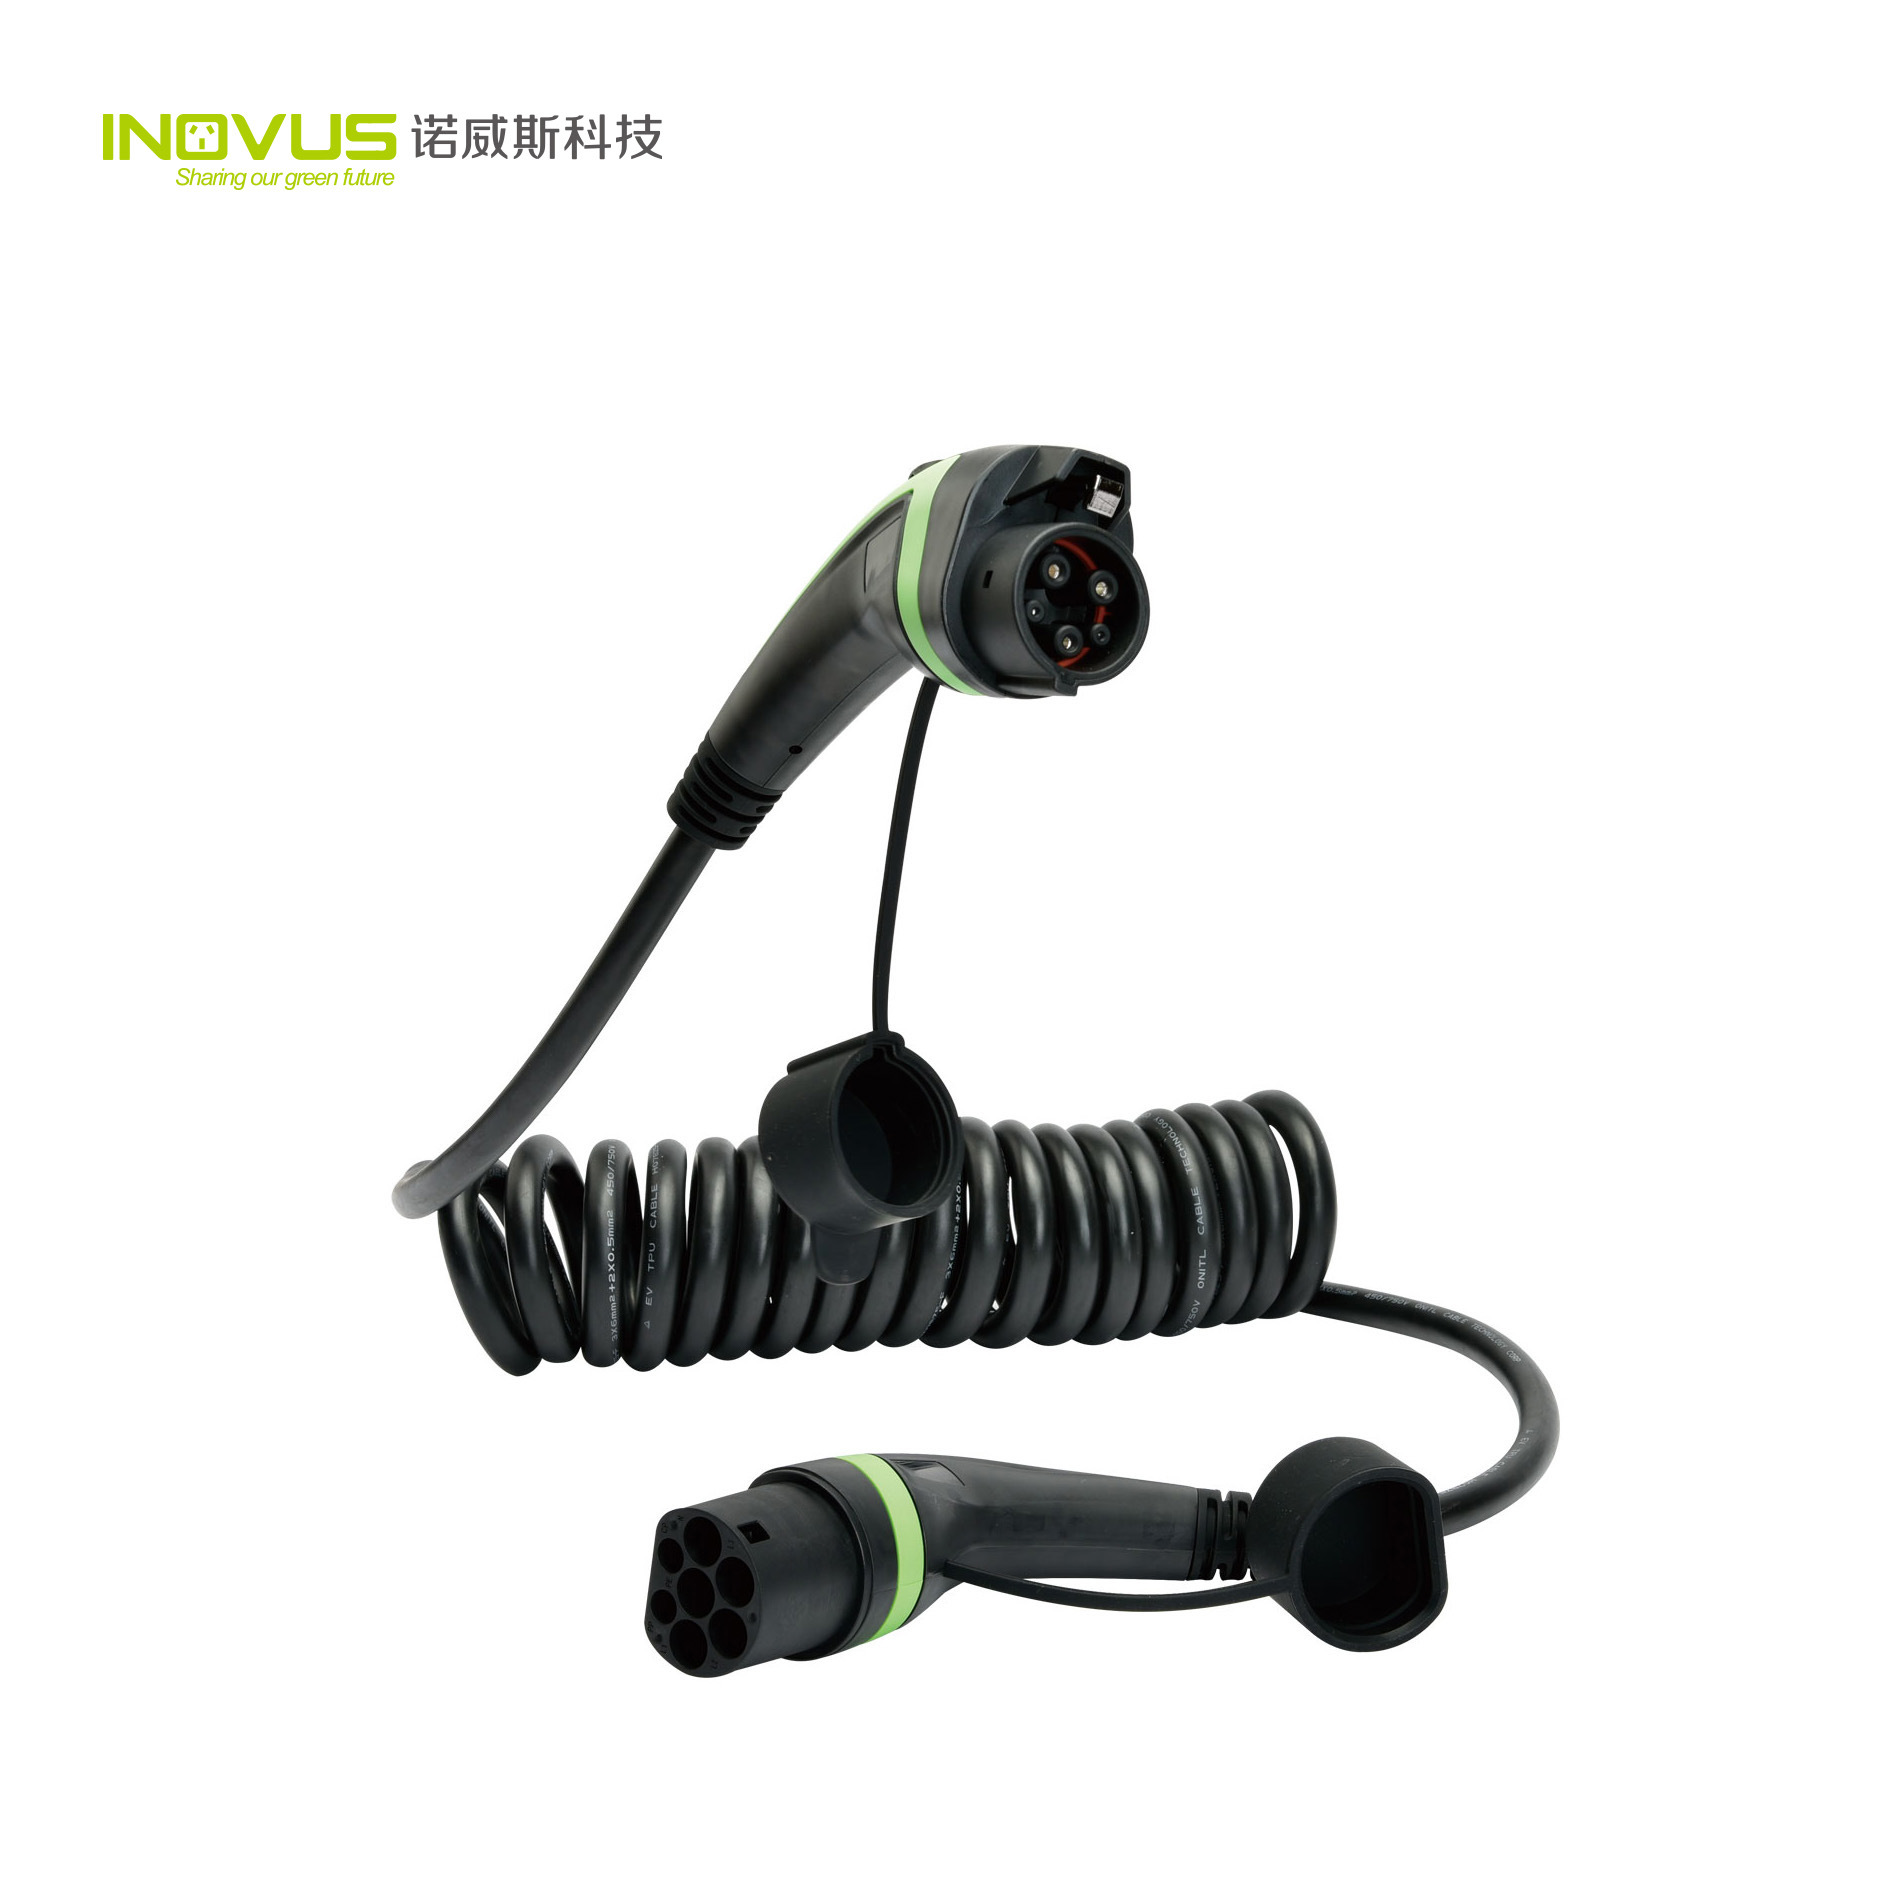 Inovus AC EV Charging Cable 16A 3phase 11kw Type 2 to Type 2 Female Plug with TUV Ce RoHS Certificate